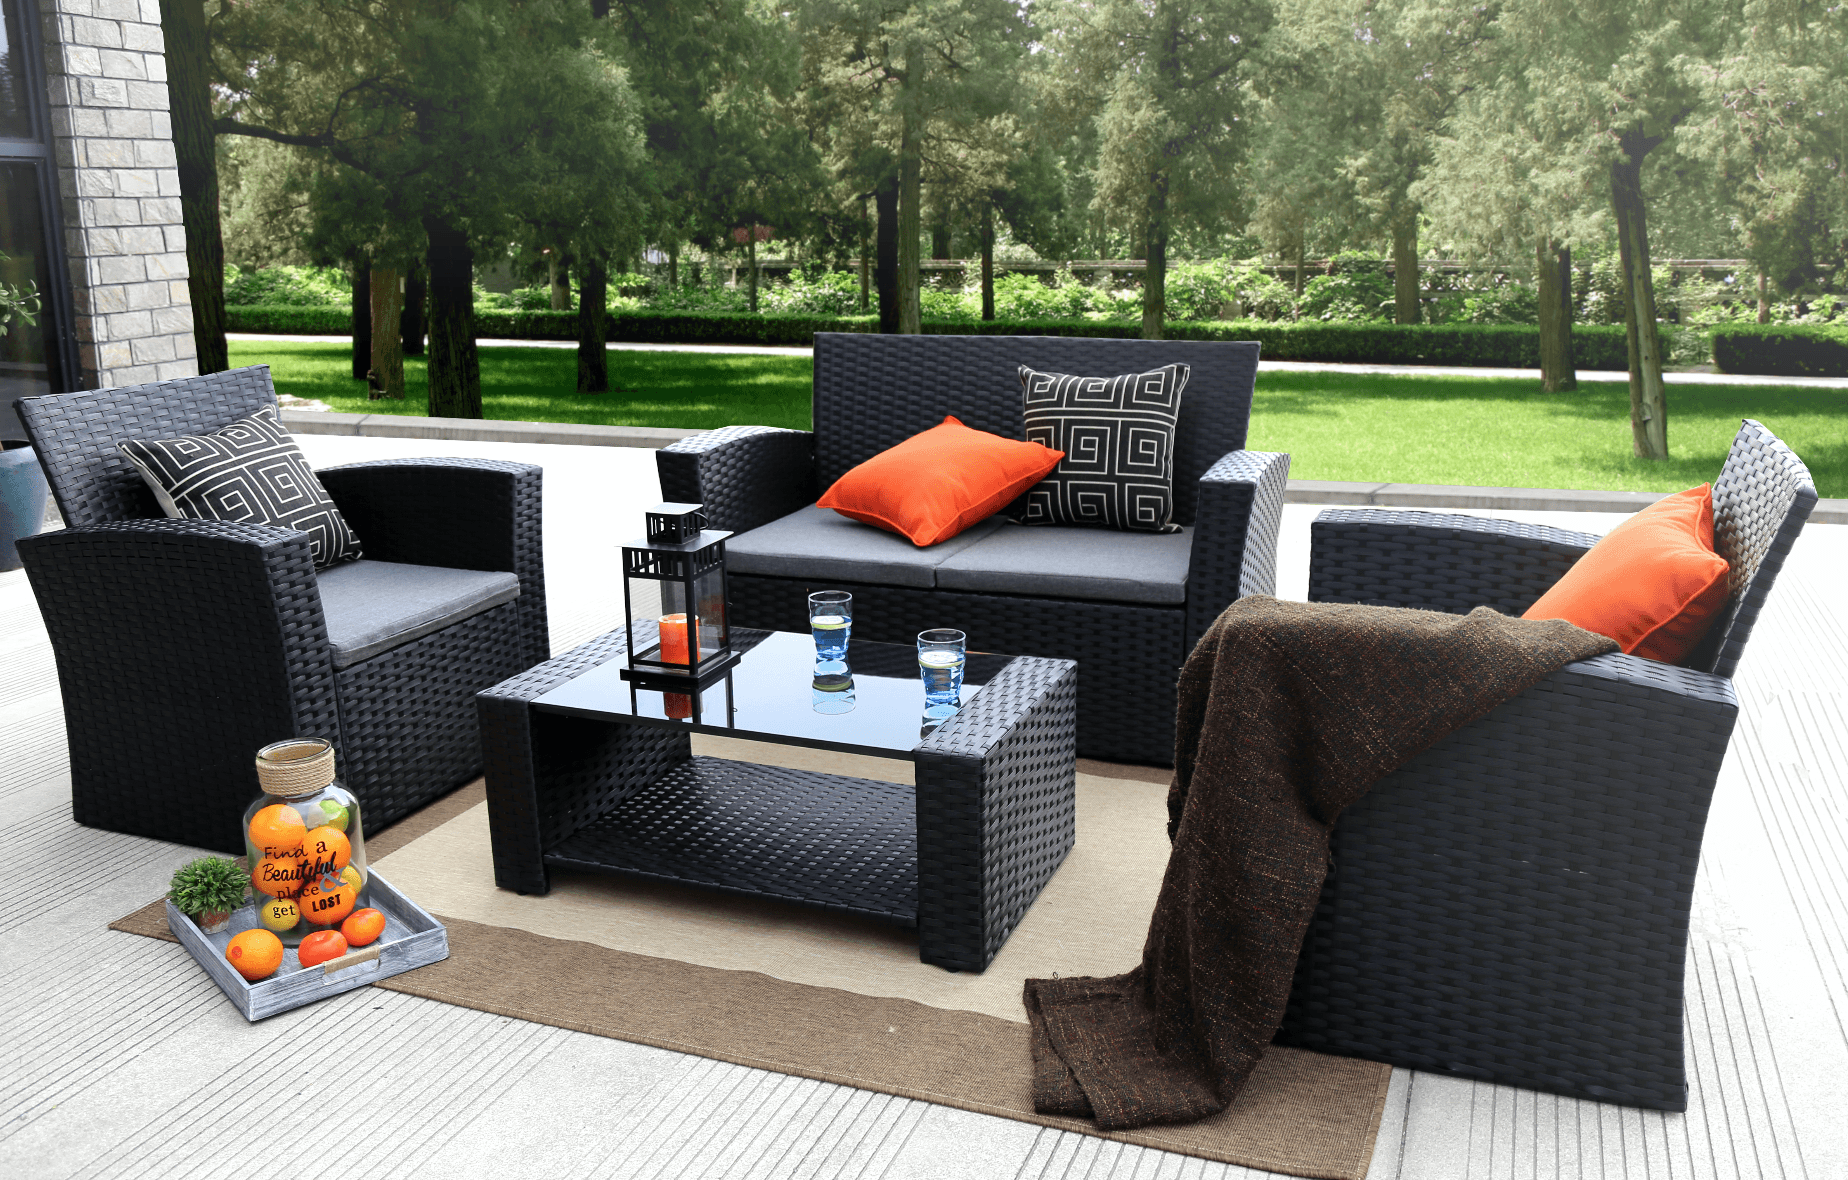 Baner Garden Outdoor Furniture Complete Patio Wicker Rattan Garden Set,  Black, 4 Pieces